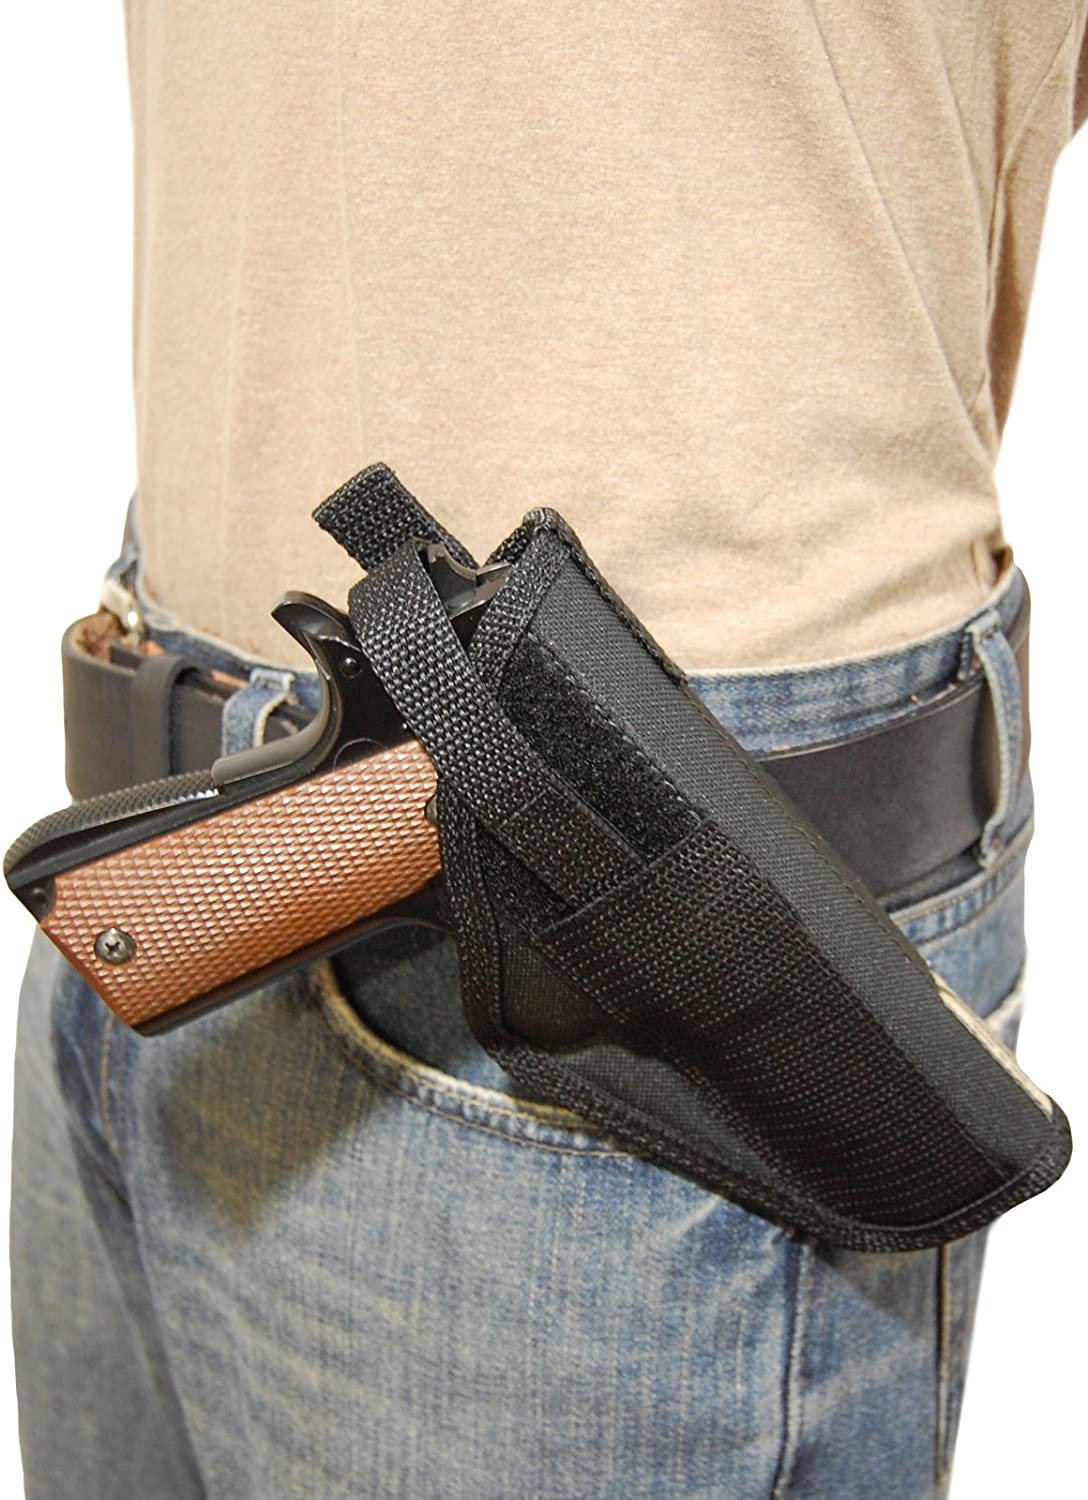 Barsony New Concealment Cross Draw High material Gun 9mm Size Holster for OFFicial store Full